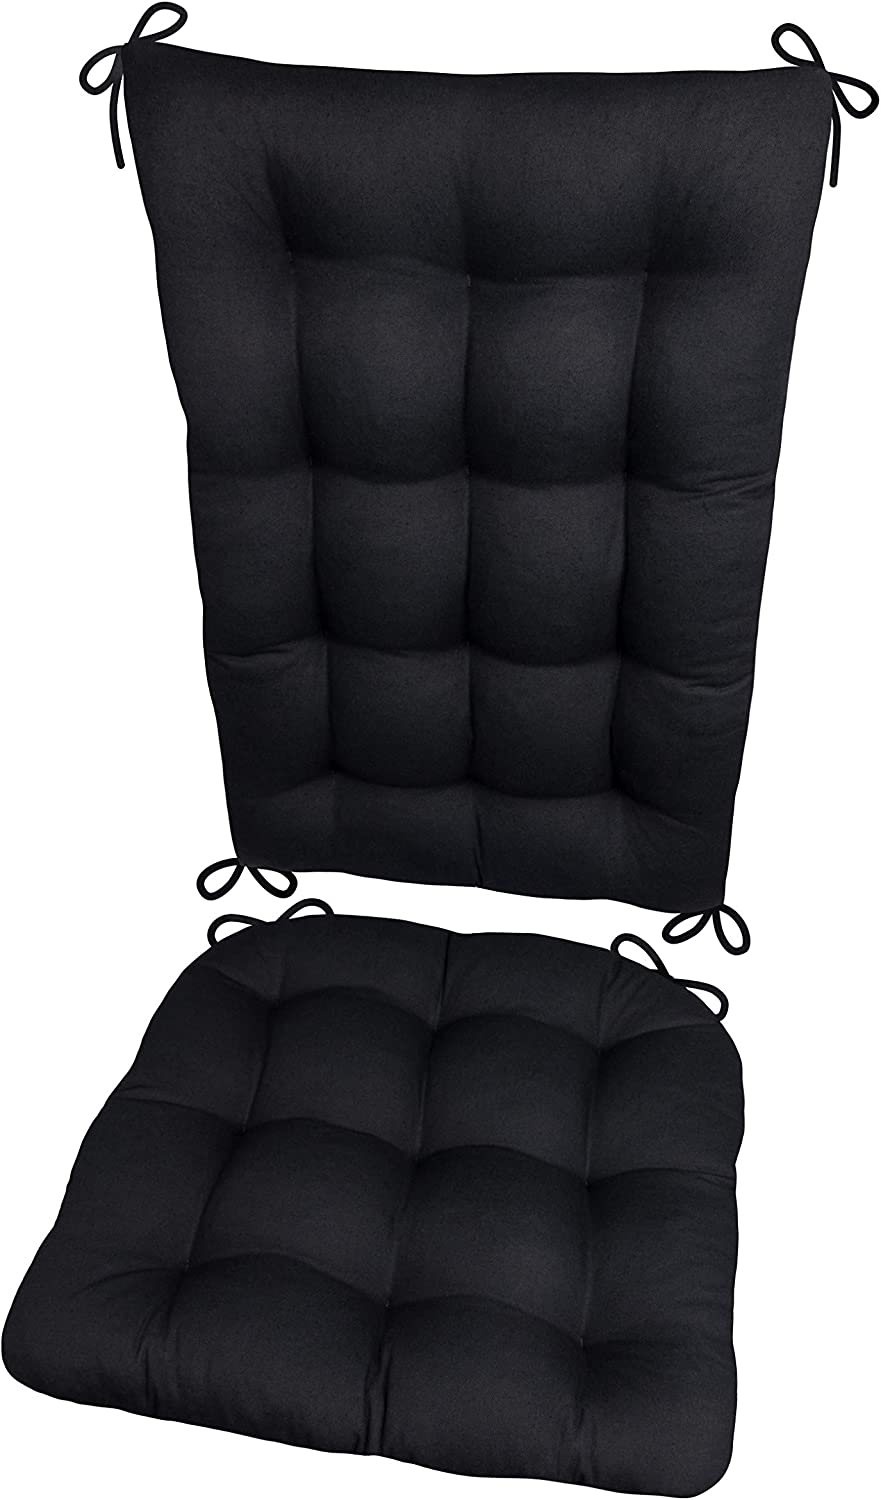 Barnett Home Decor Ticking Stripe Black Rocking Chair Cushions Presidential//Black - Natural Extra-Large Seat Pad and Back Rest with Ties- Reversible Made in USA Latex Foam Fill